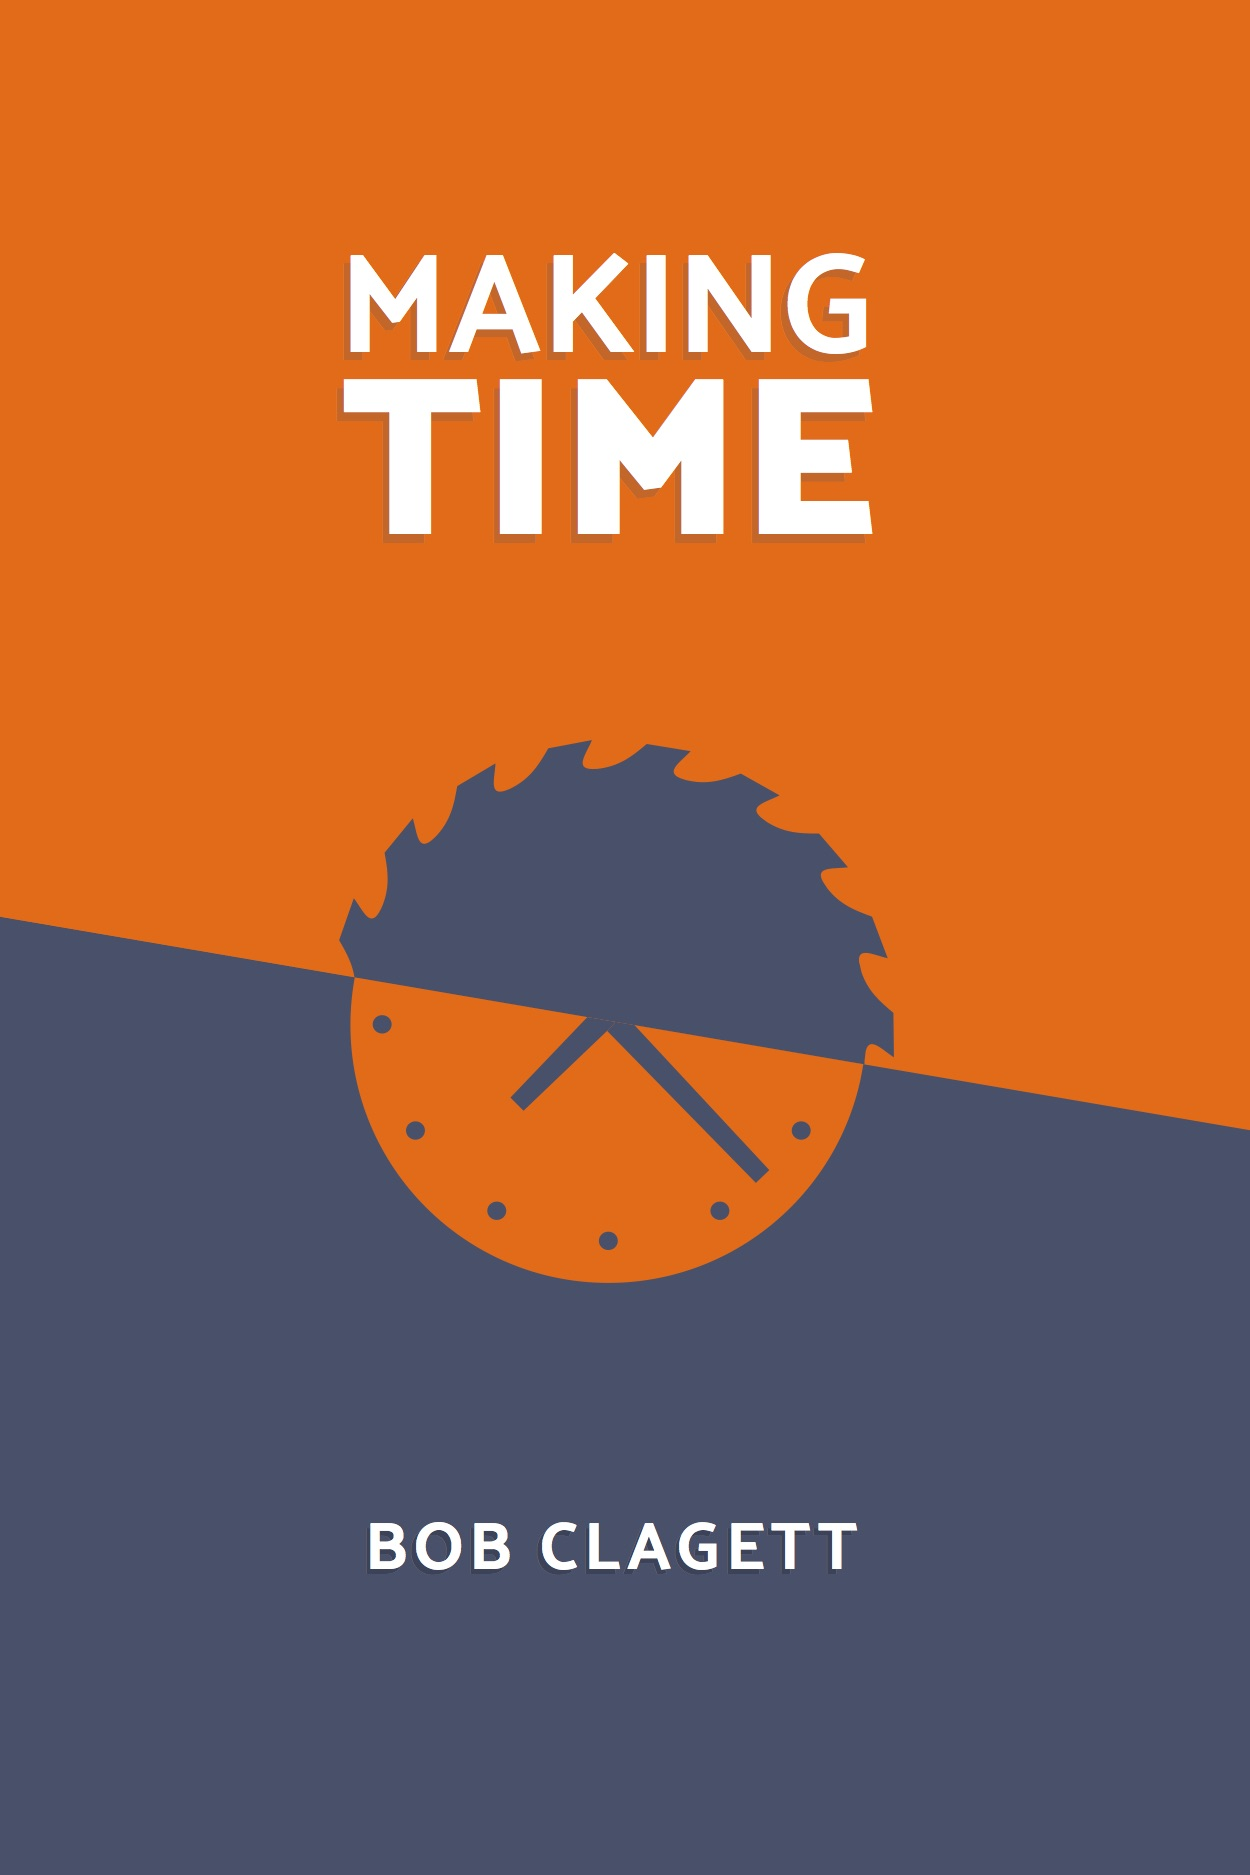 6d542674706 Making Time by Bob Clagett (All Versions) - I Like to Make Stuff